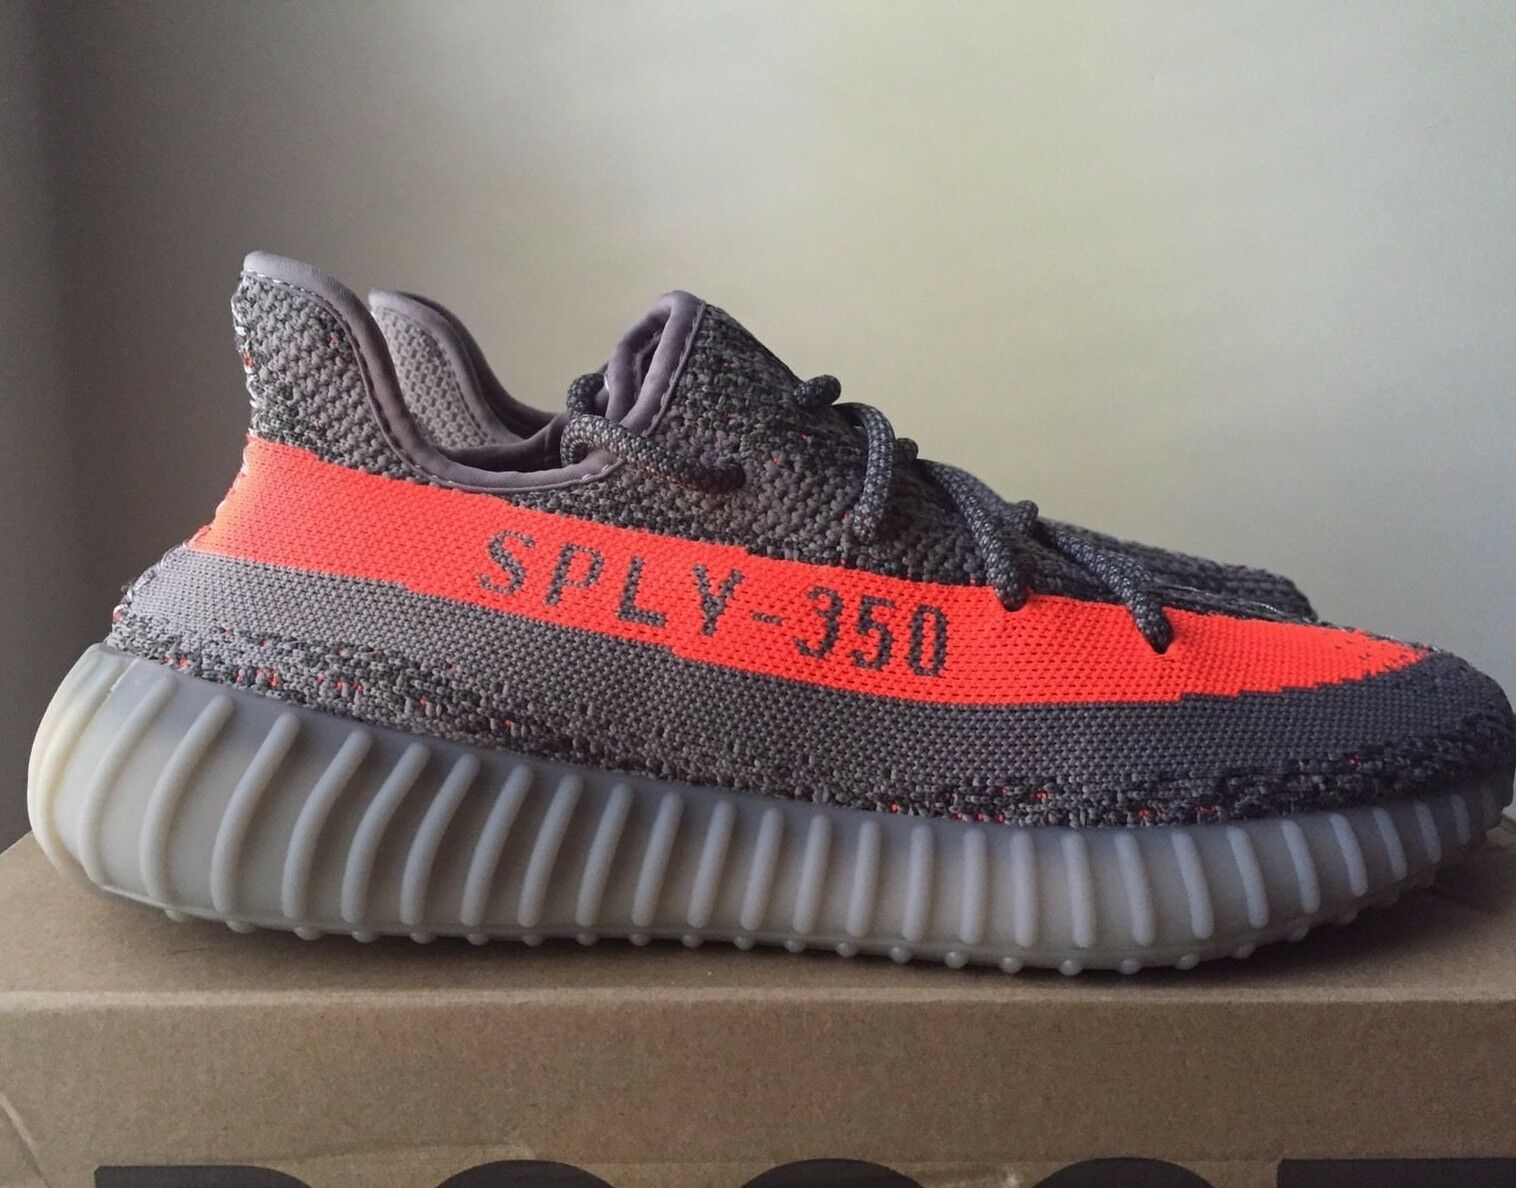 Adidas Yeezy Boost 350 V2 Beluga Size 9.5 Grey Solar Red BB1826 100% Authentic